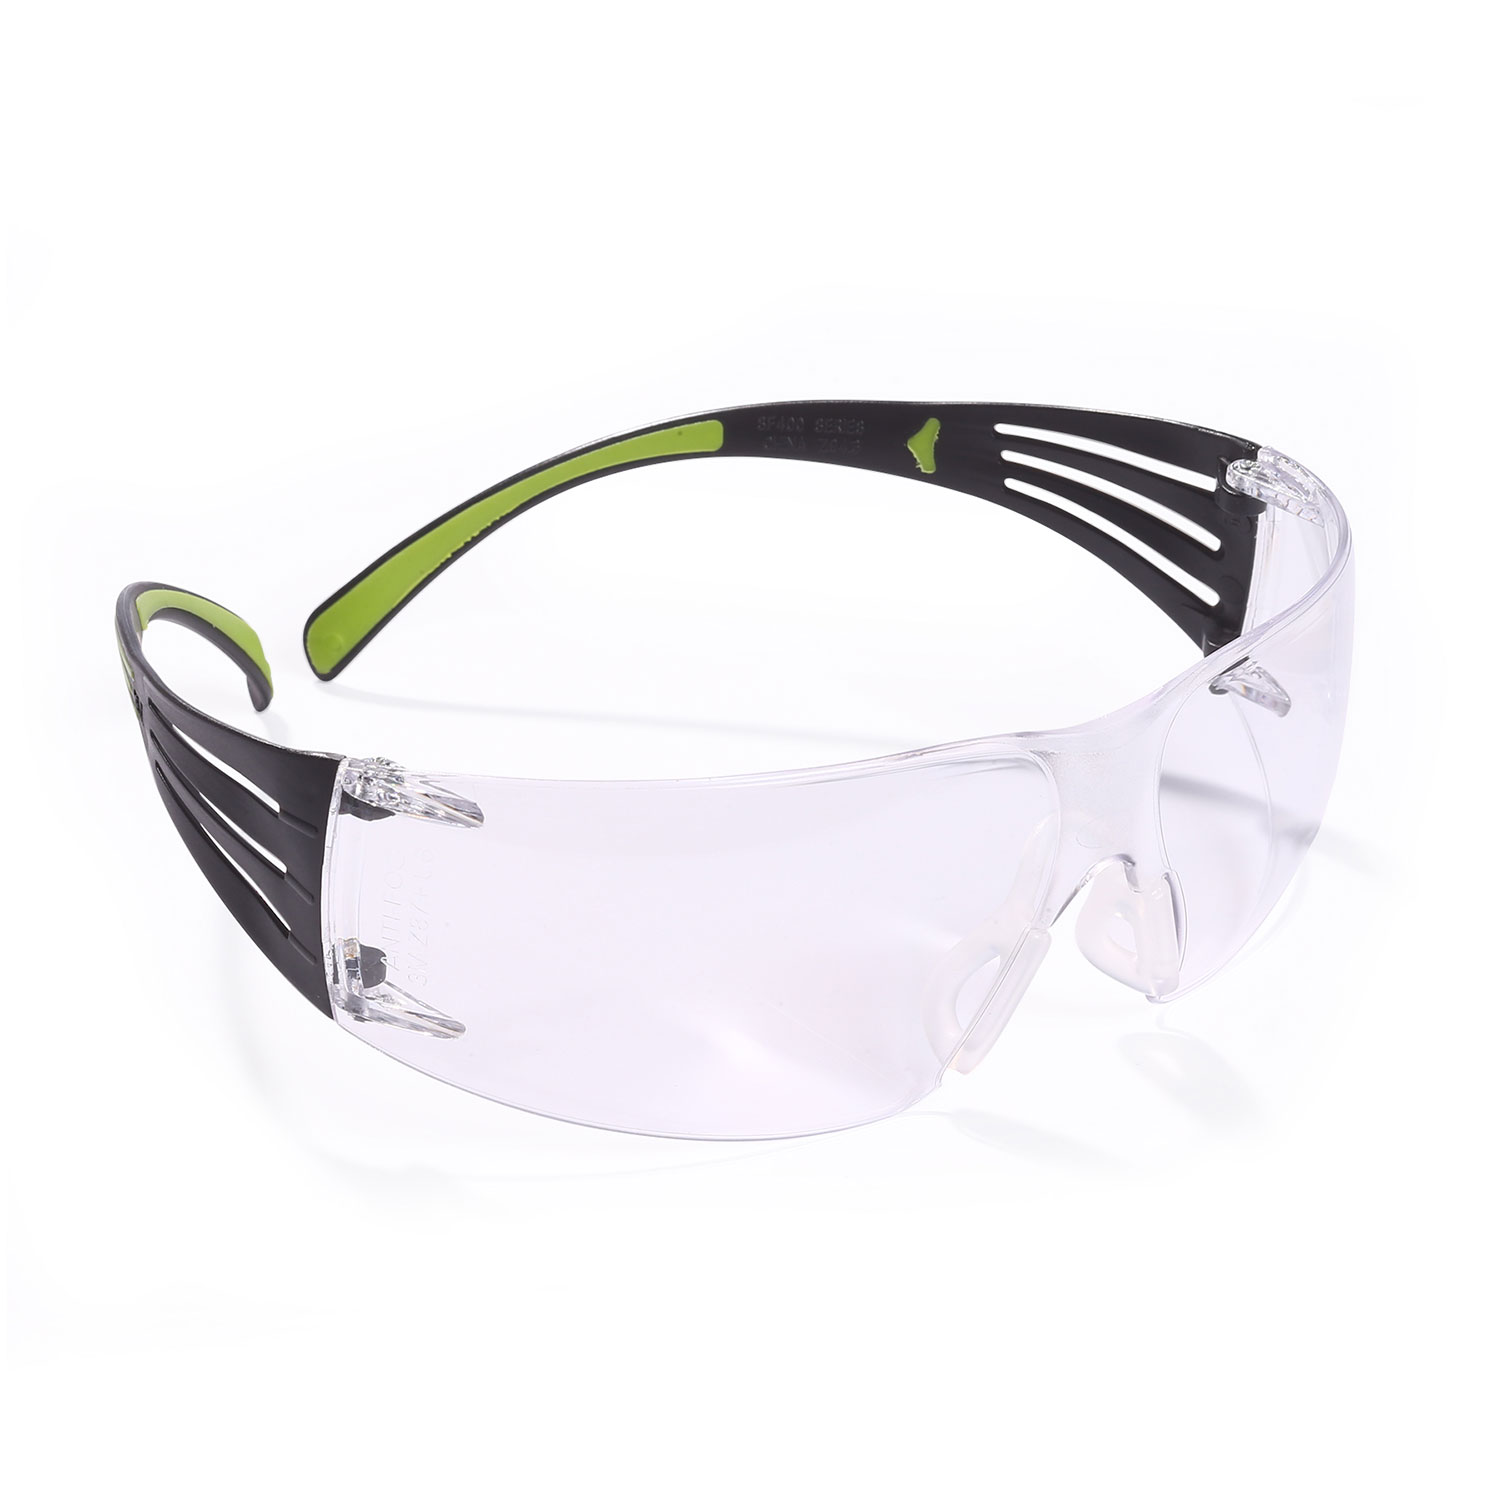 3M Peltor Sport SecureFit Shooting Glasses